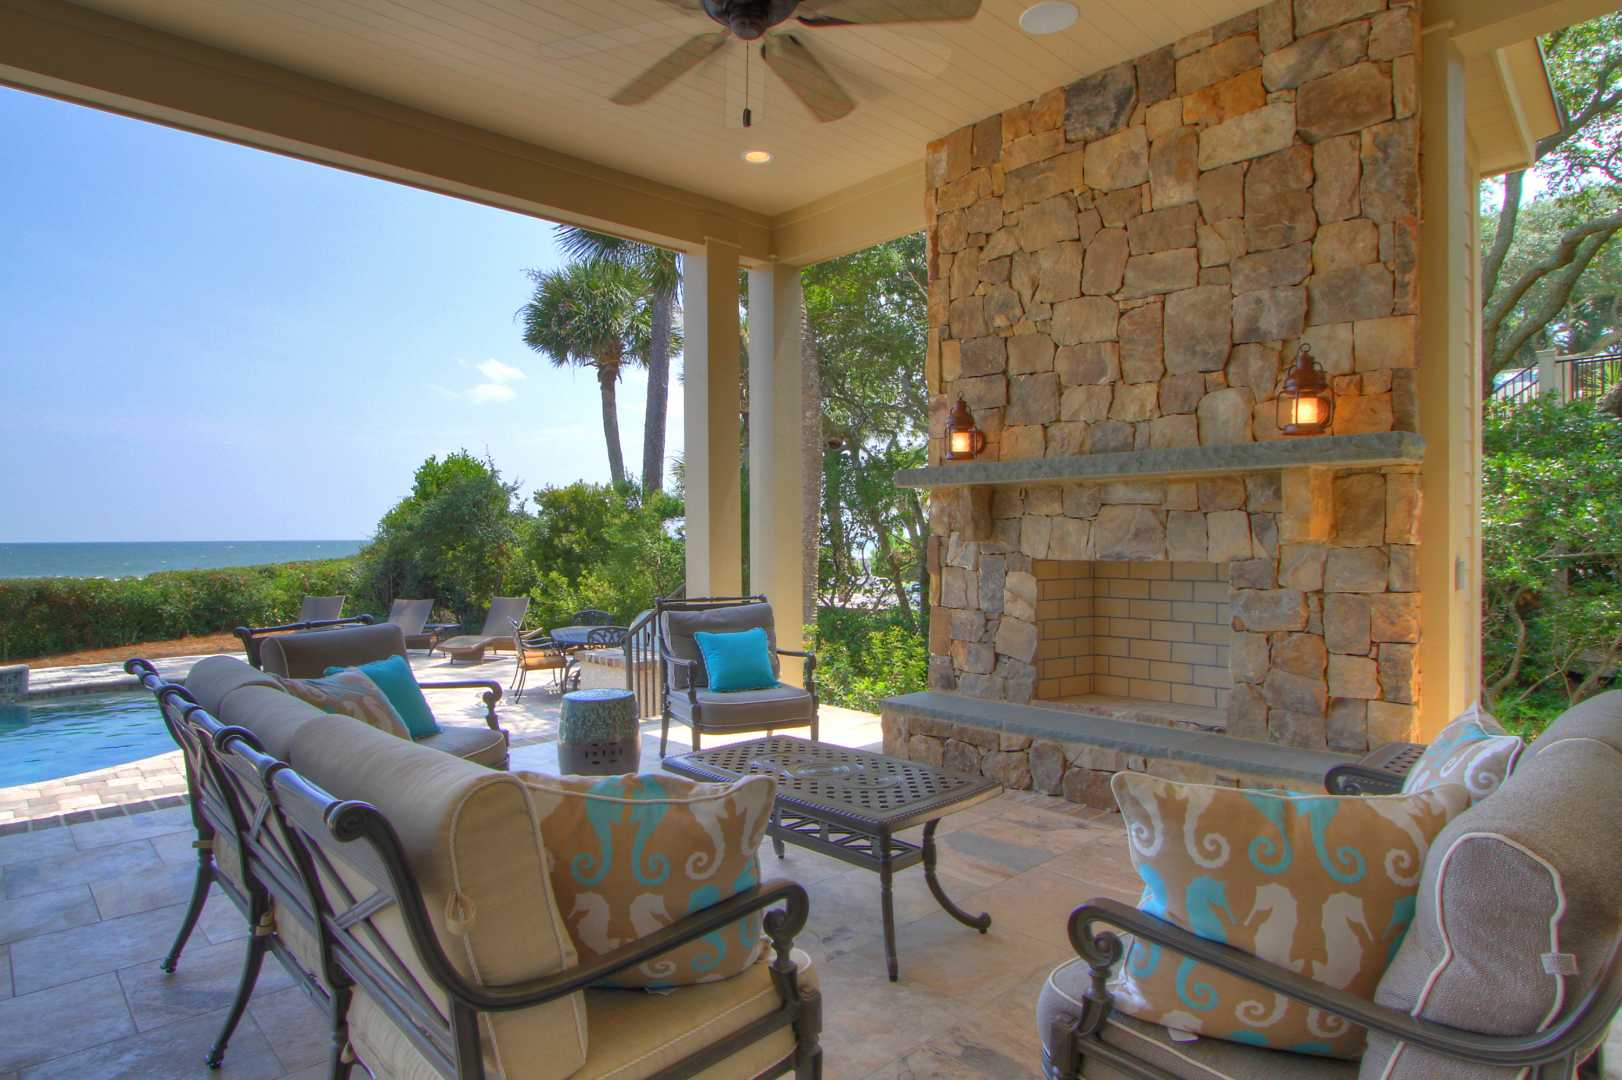 Ocean Jewel 7 Bedroom Luxury Oceanfront Home Hilton Head Island